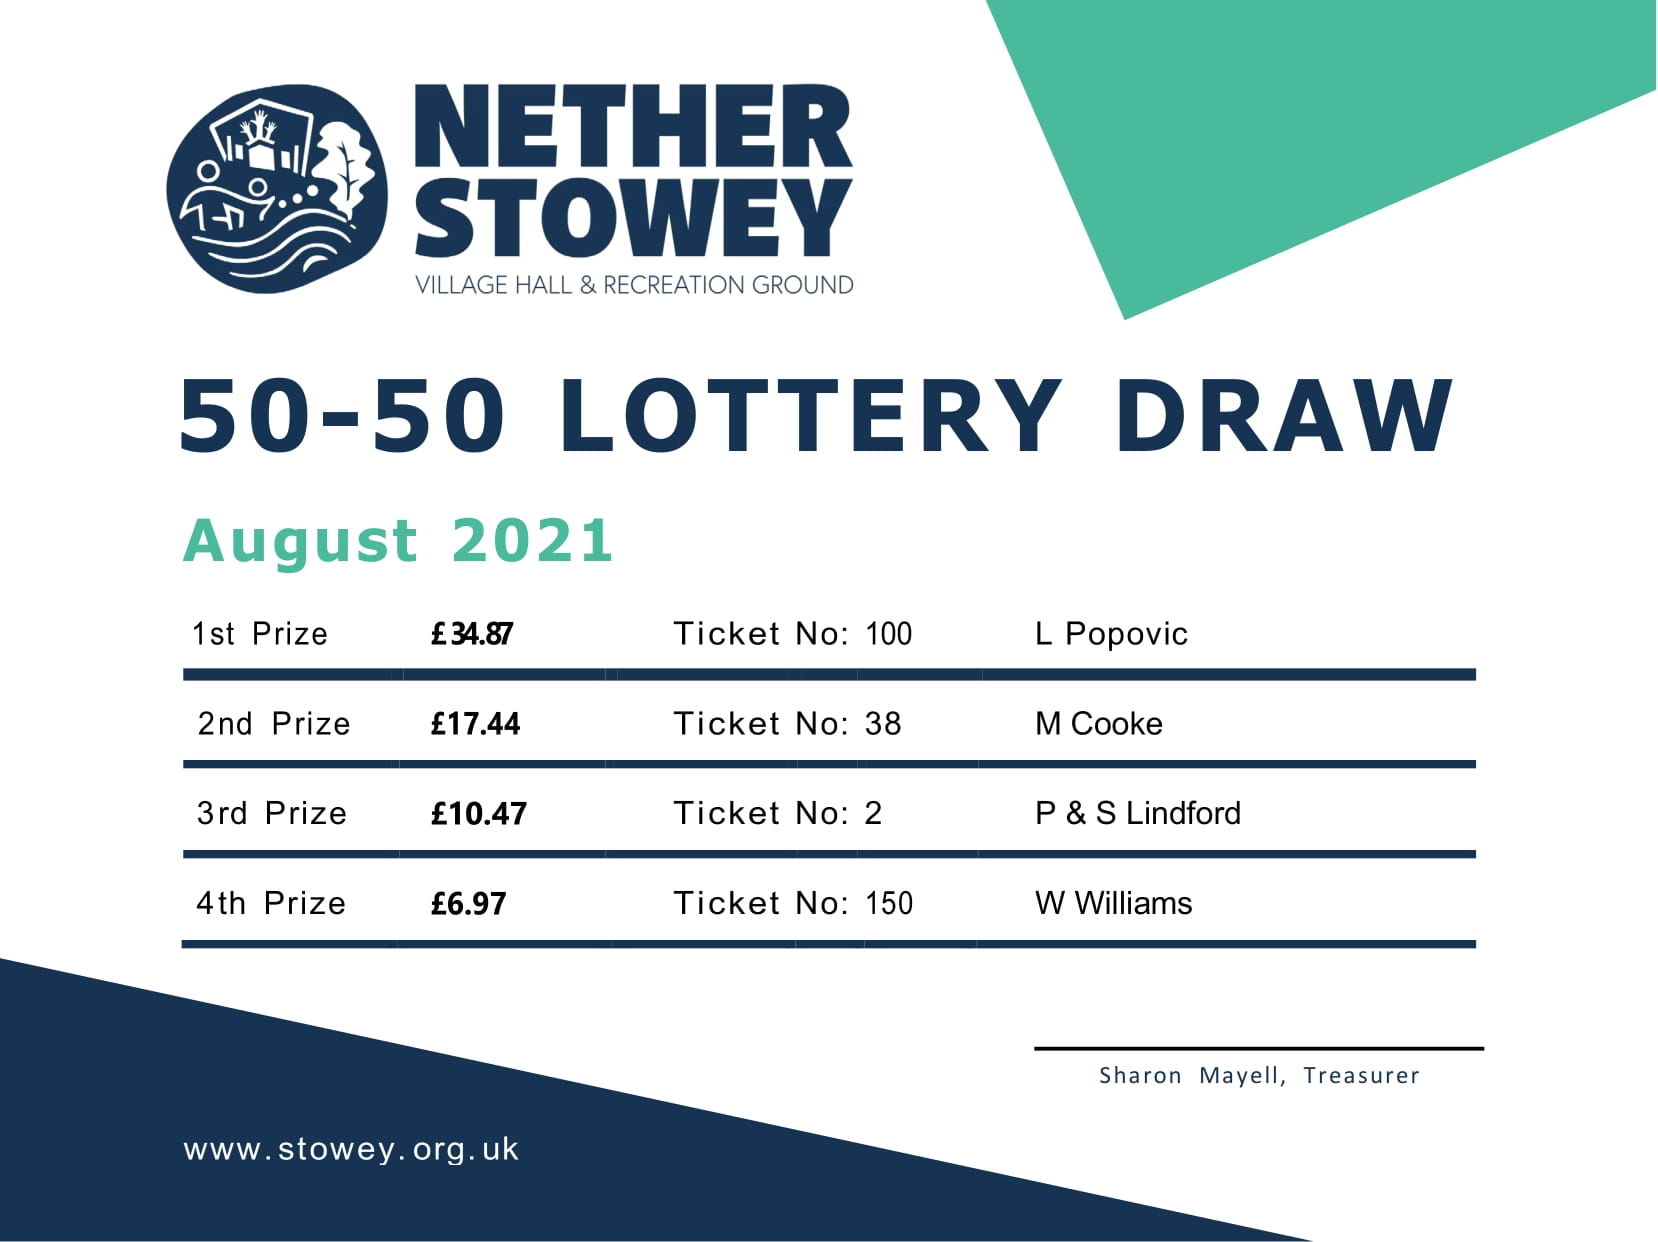 Nether Stowey 50-50 Lottery August 2021